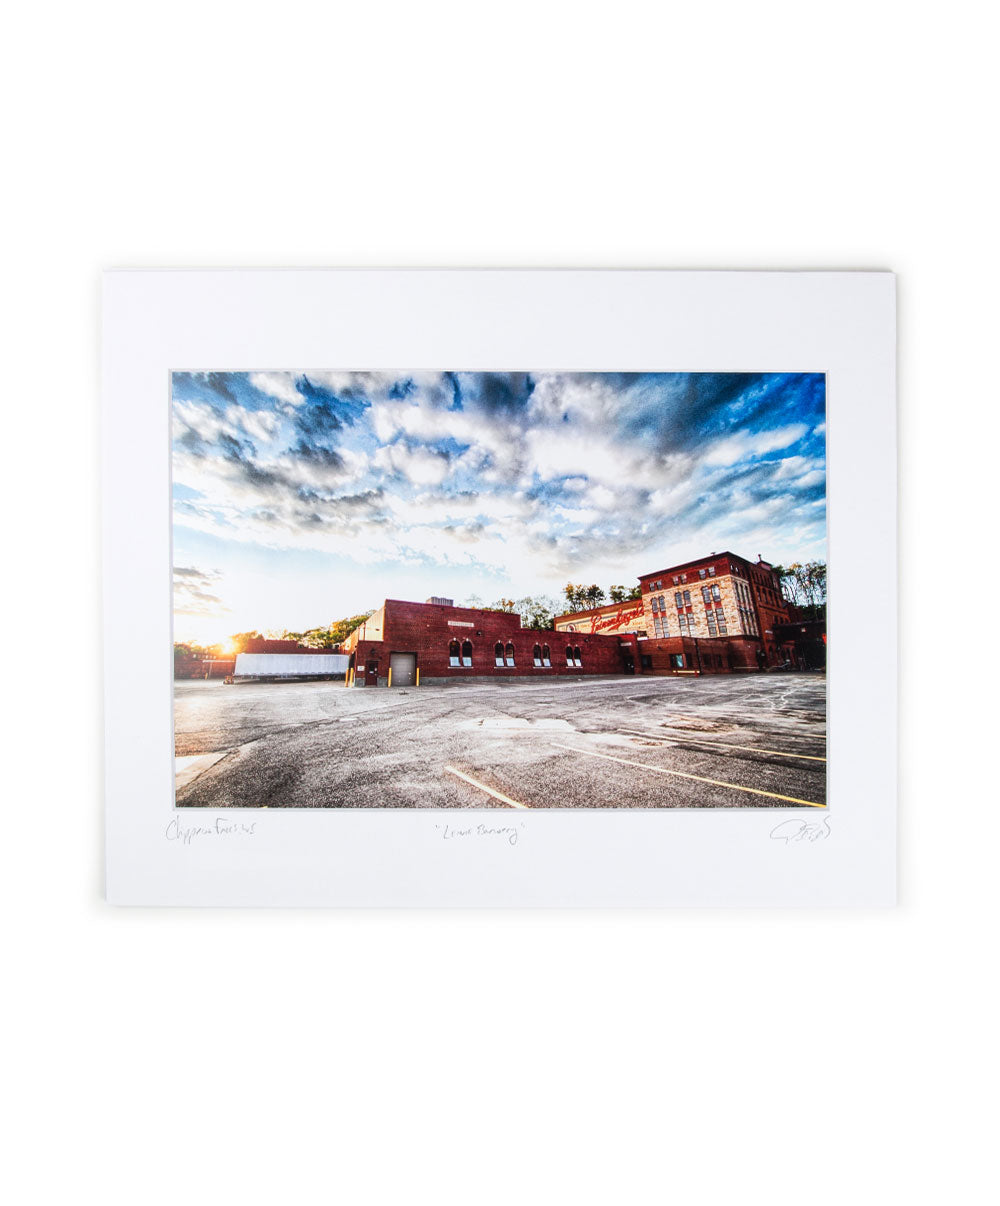 8X12 MATTED BREWERY SUNRISE